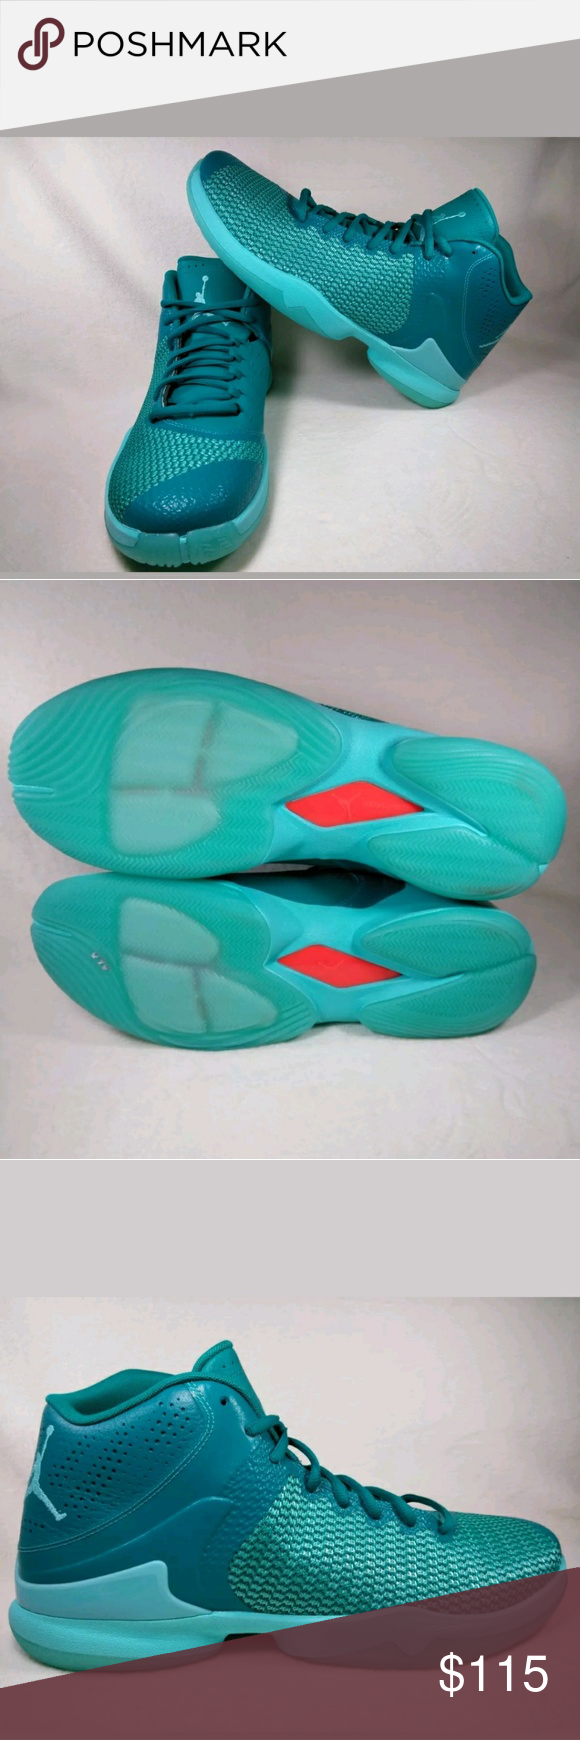 30bc2b1a184117 Jordan Super.Fly 4 PO Basketball Shoe Size 13 Teal Brand new.No box.Size 13.Never  been worn.Size hard to find. Jordan Shoes Sneakers